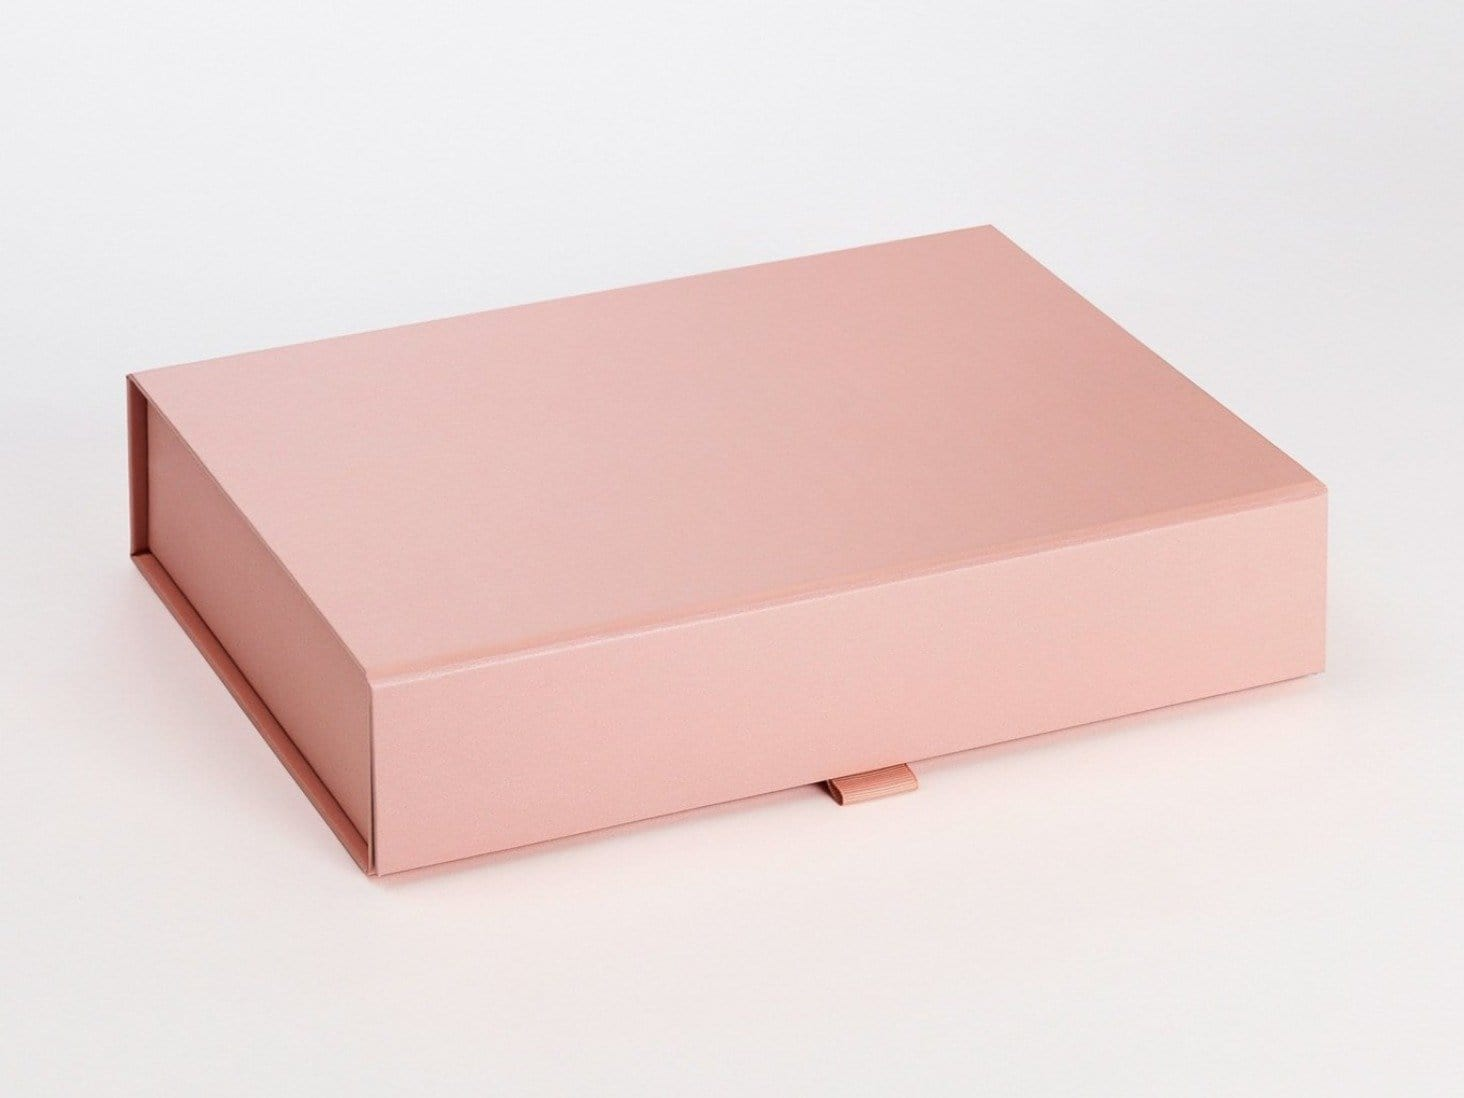 Rose Gold A4 Shallow Folding Gift Box from Foldabox